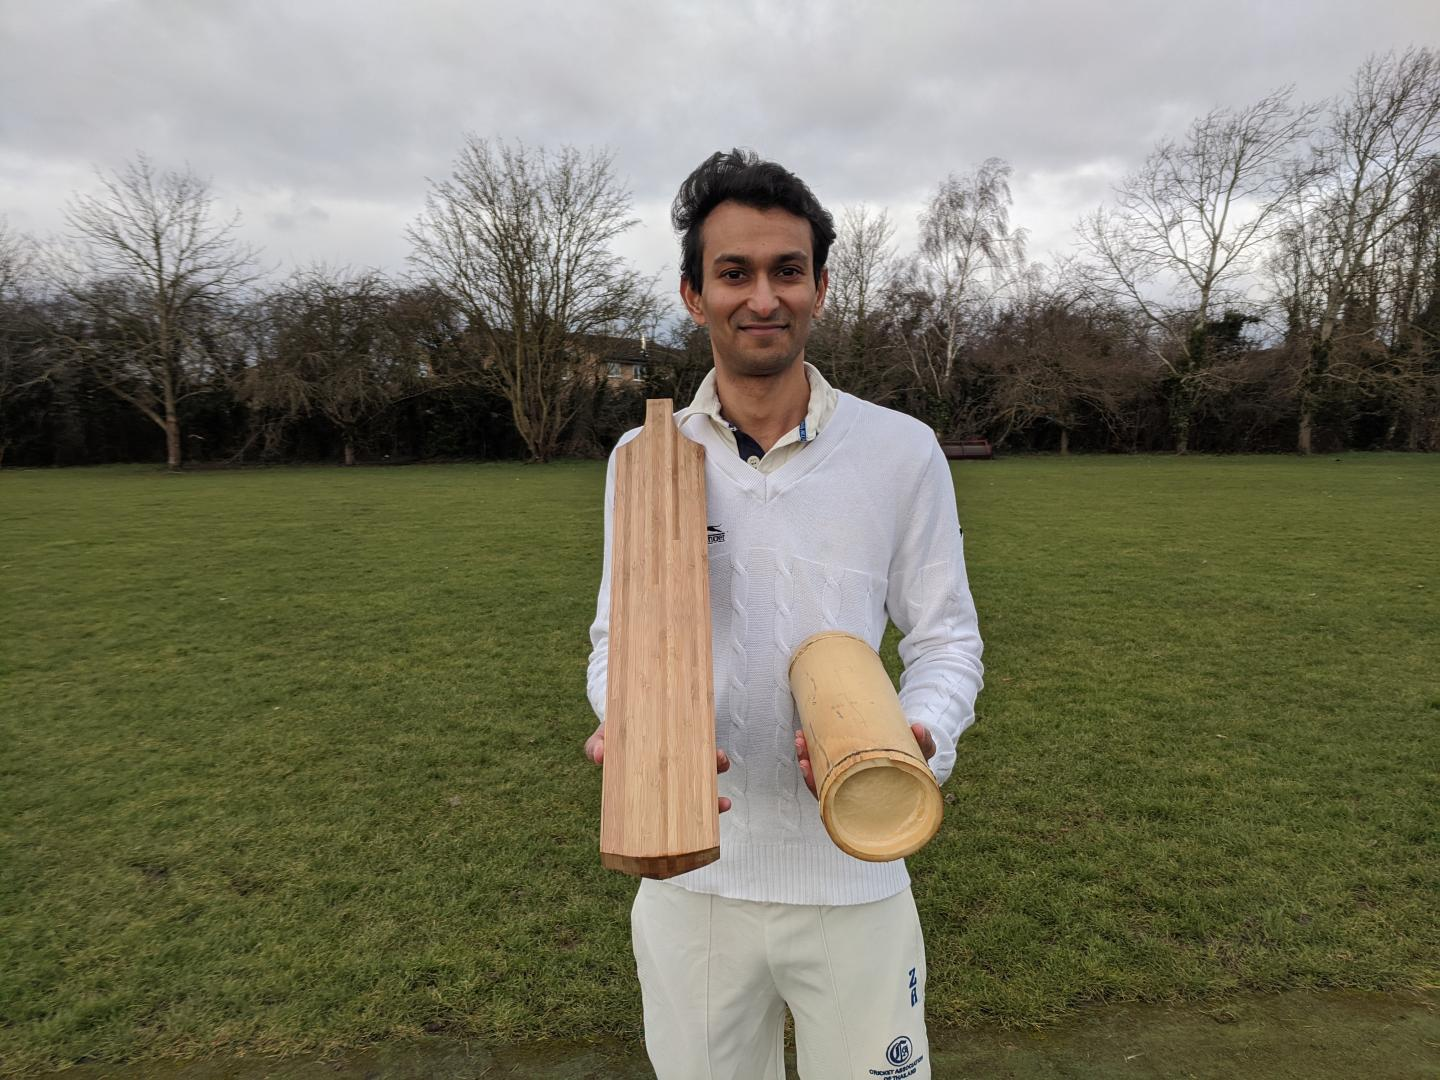 Dr. Darshil Shah with one of the prototype bamboo cricket bats and a length of the bamboo used to make it